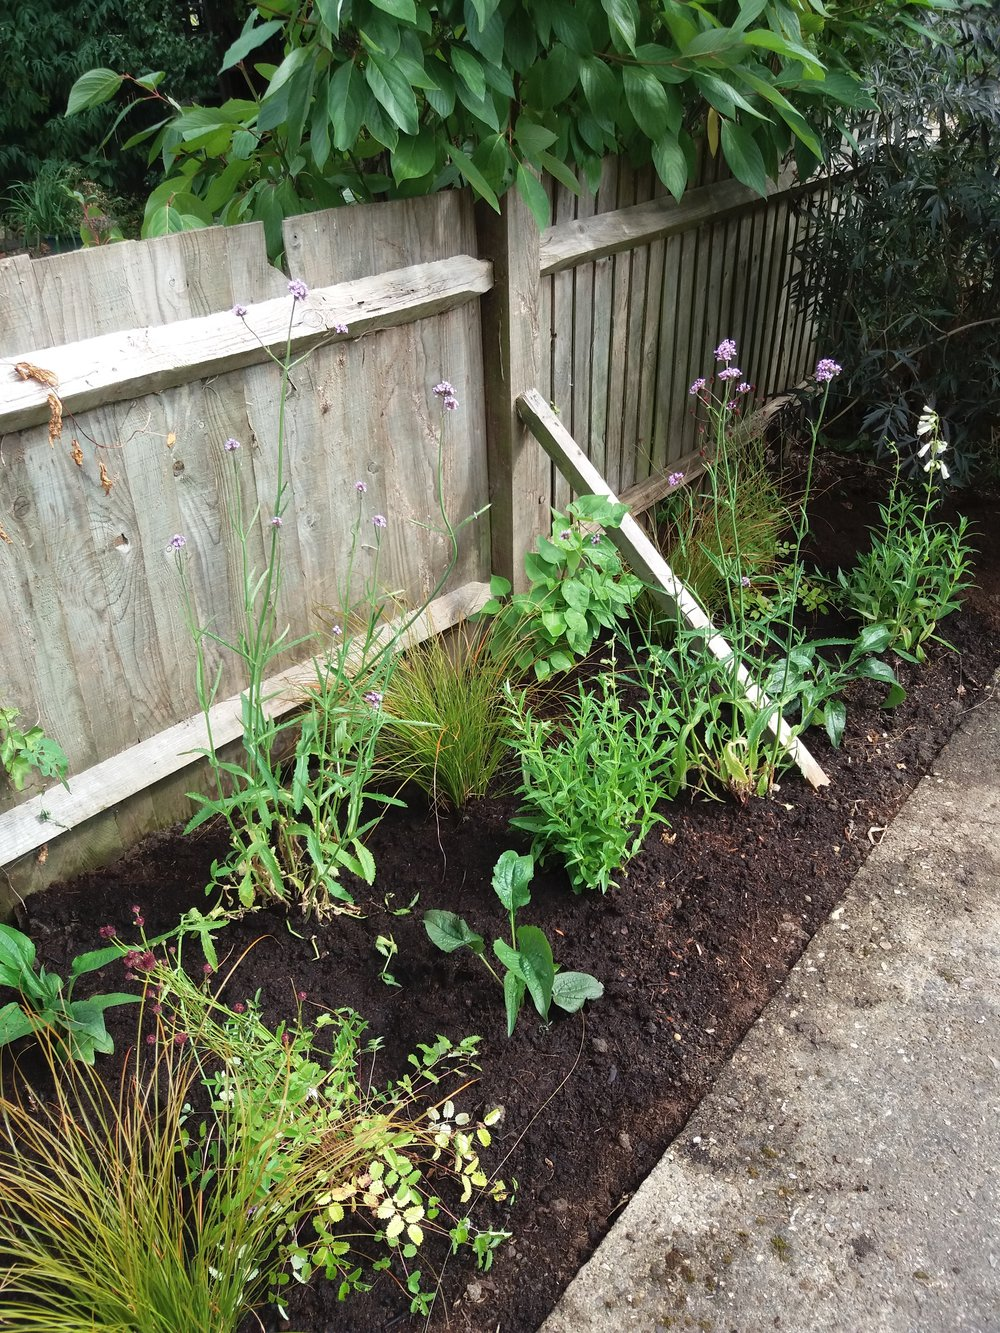 Planting up  a garden in a cottage garden style using Verbena, Echianacea, Penstemon and many more plants, July 2018